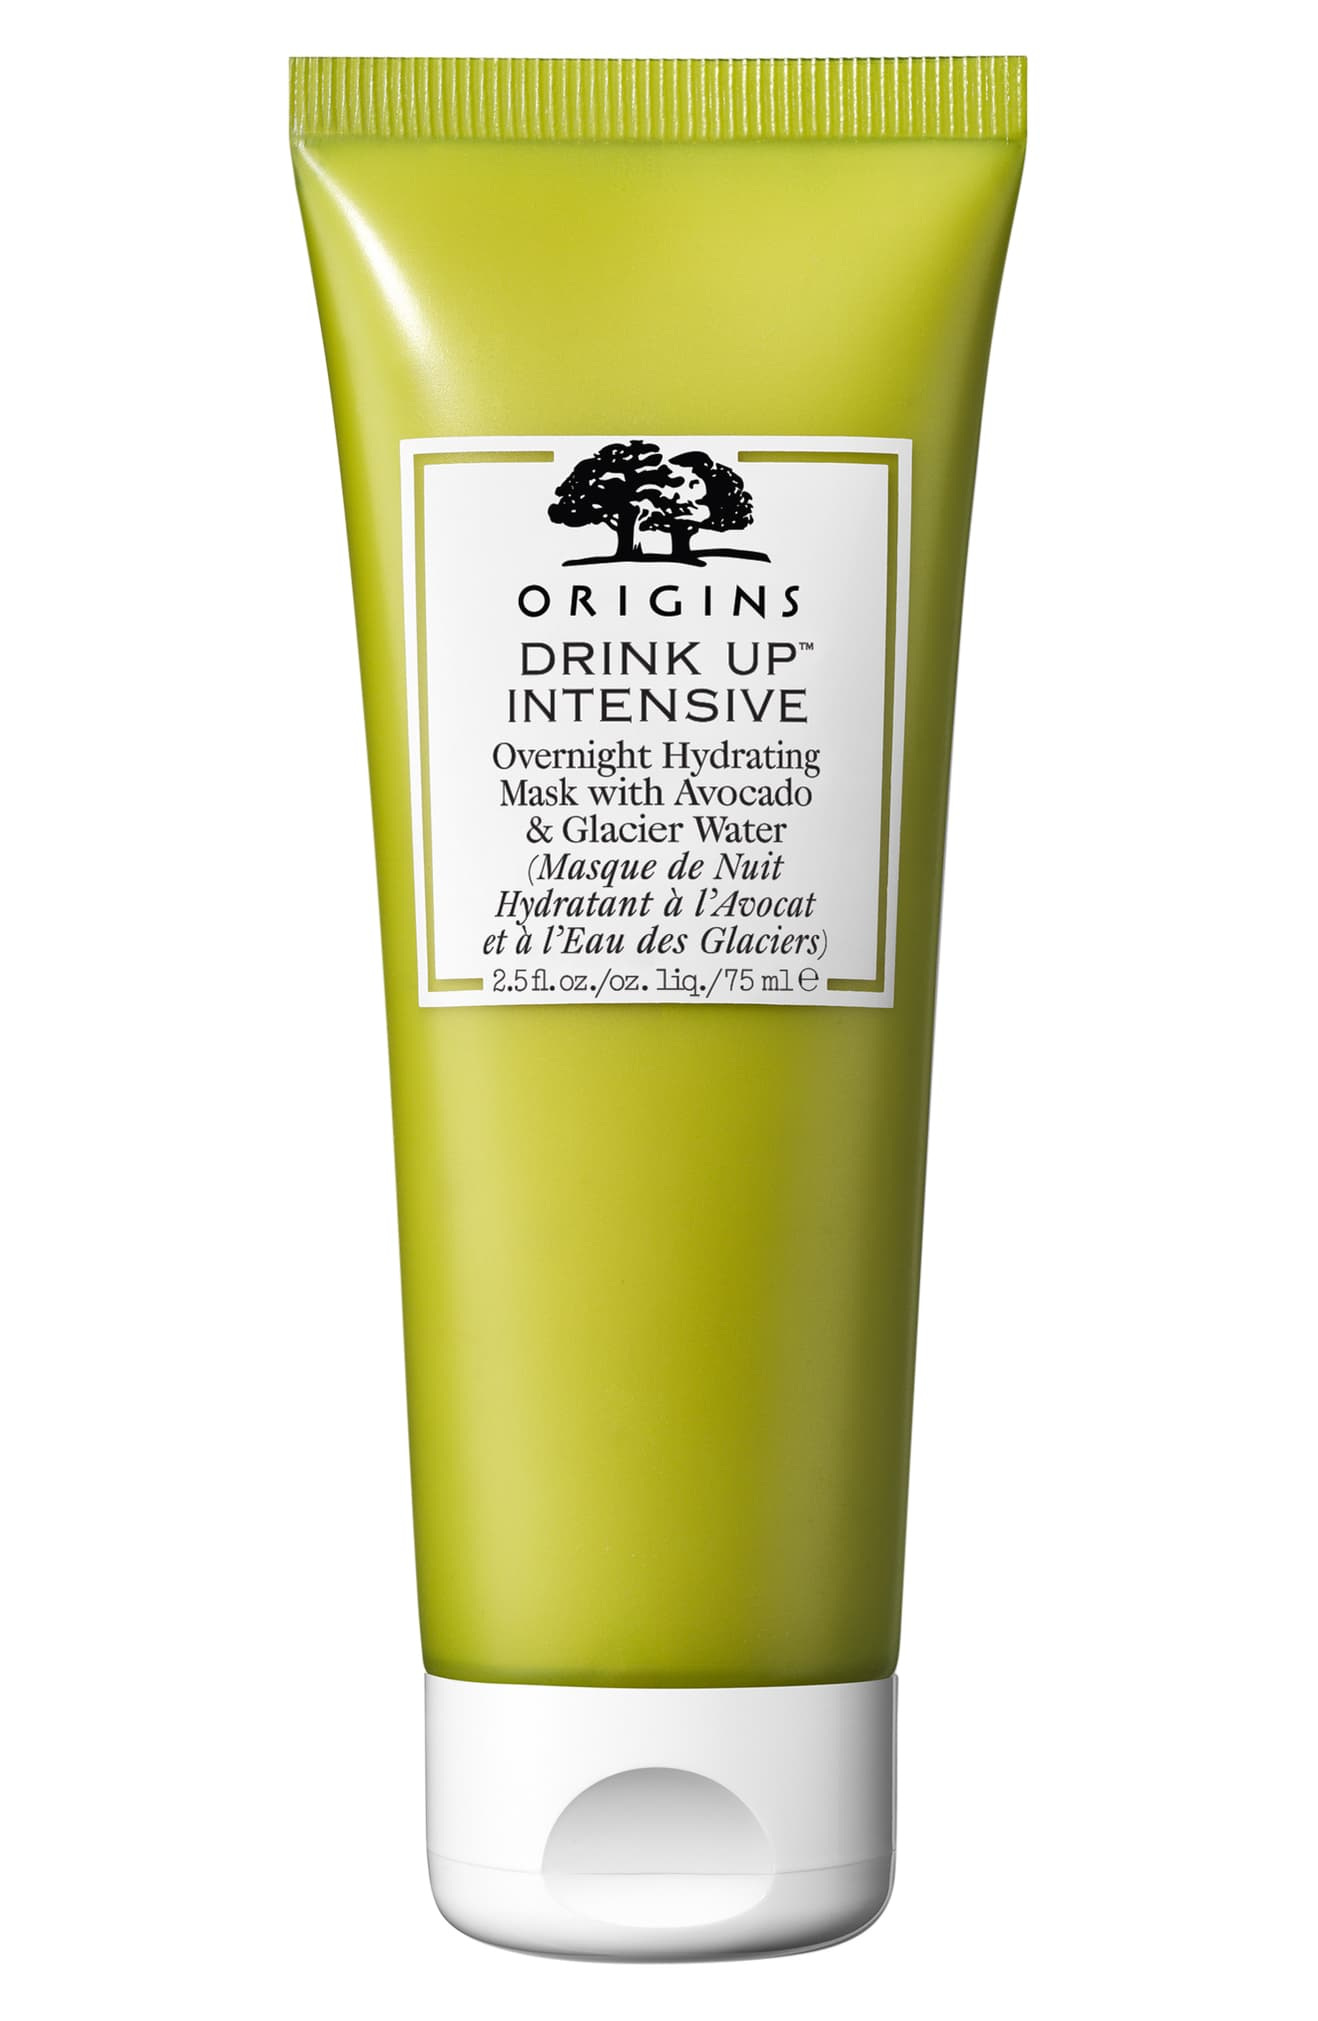 ORIGINS Drink Up™ Intensive Overnight Hydrating Face Mask With Avocado & Glacier Water